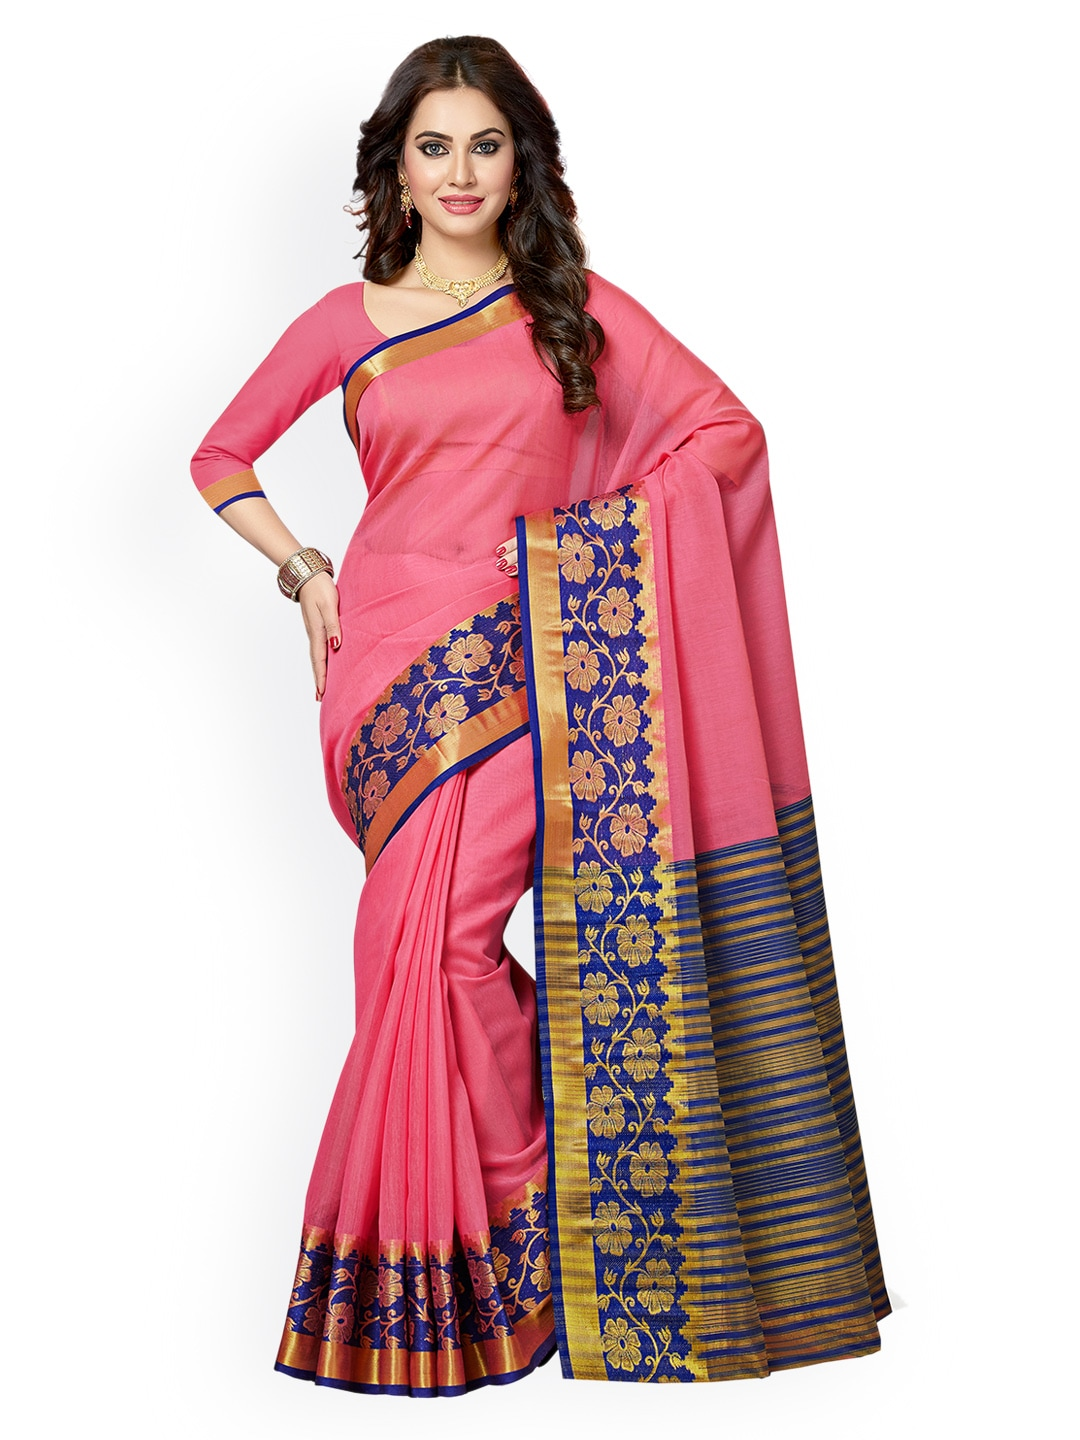 64378febab3d7 Traditional Sarees - Buy Traditional and Fashionable Saree Online